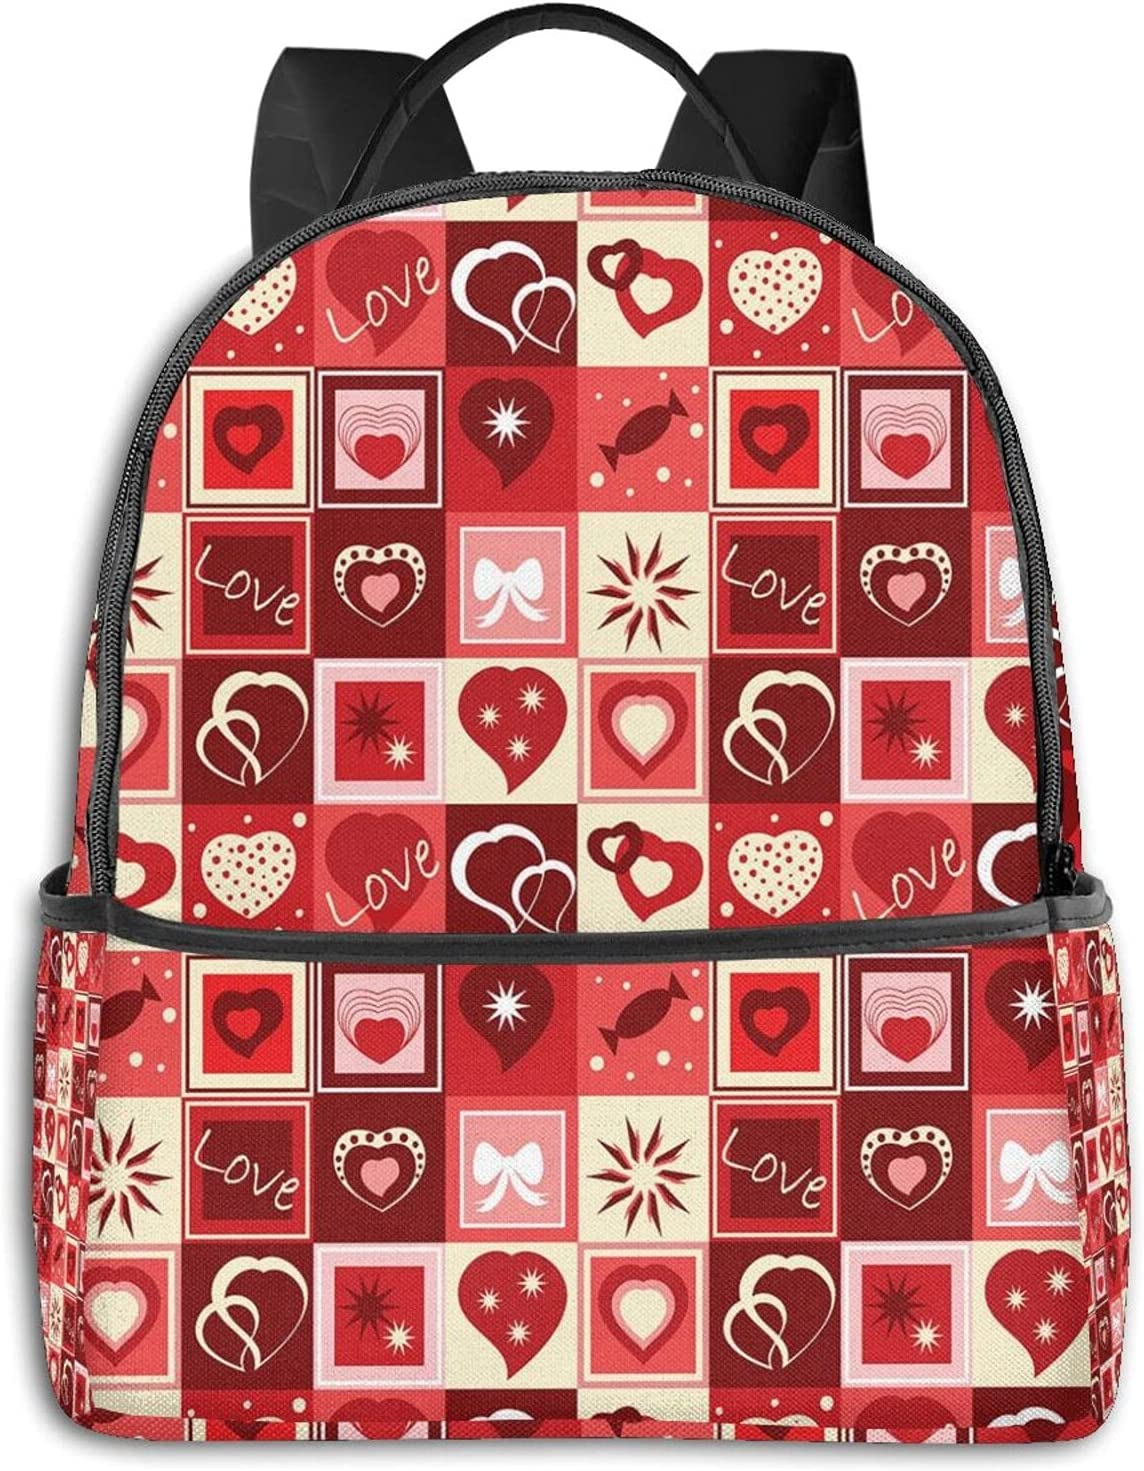 Valentines Day Themed Frames Pattern Stars Hearts shop Love Ranking TOP5 With Lett